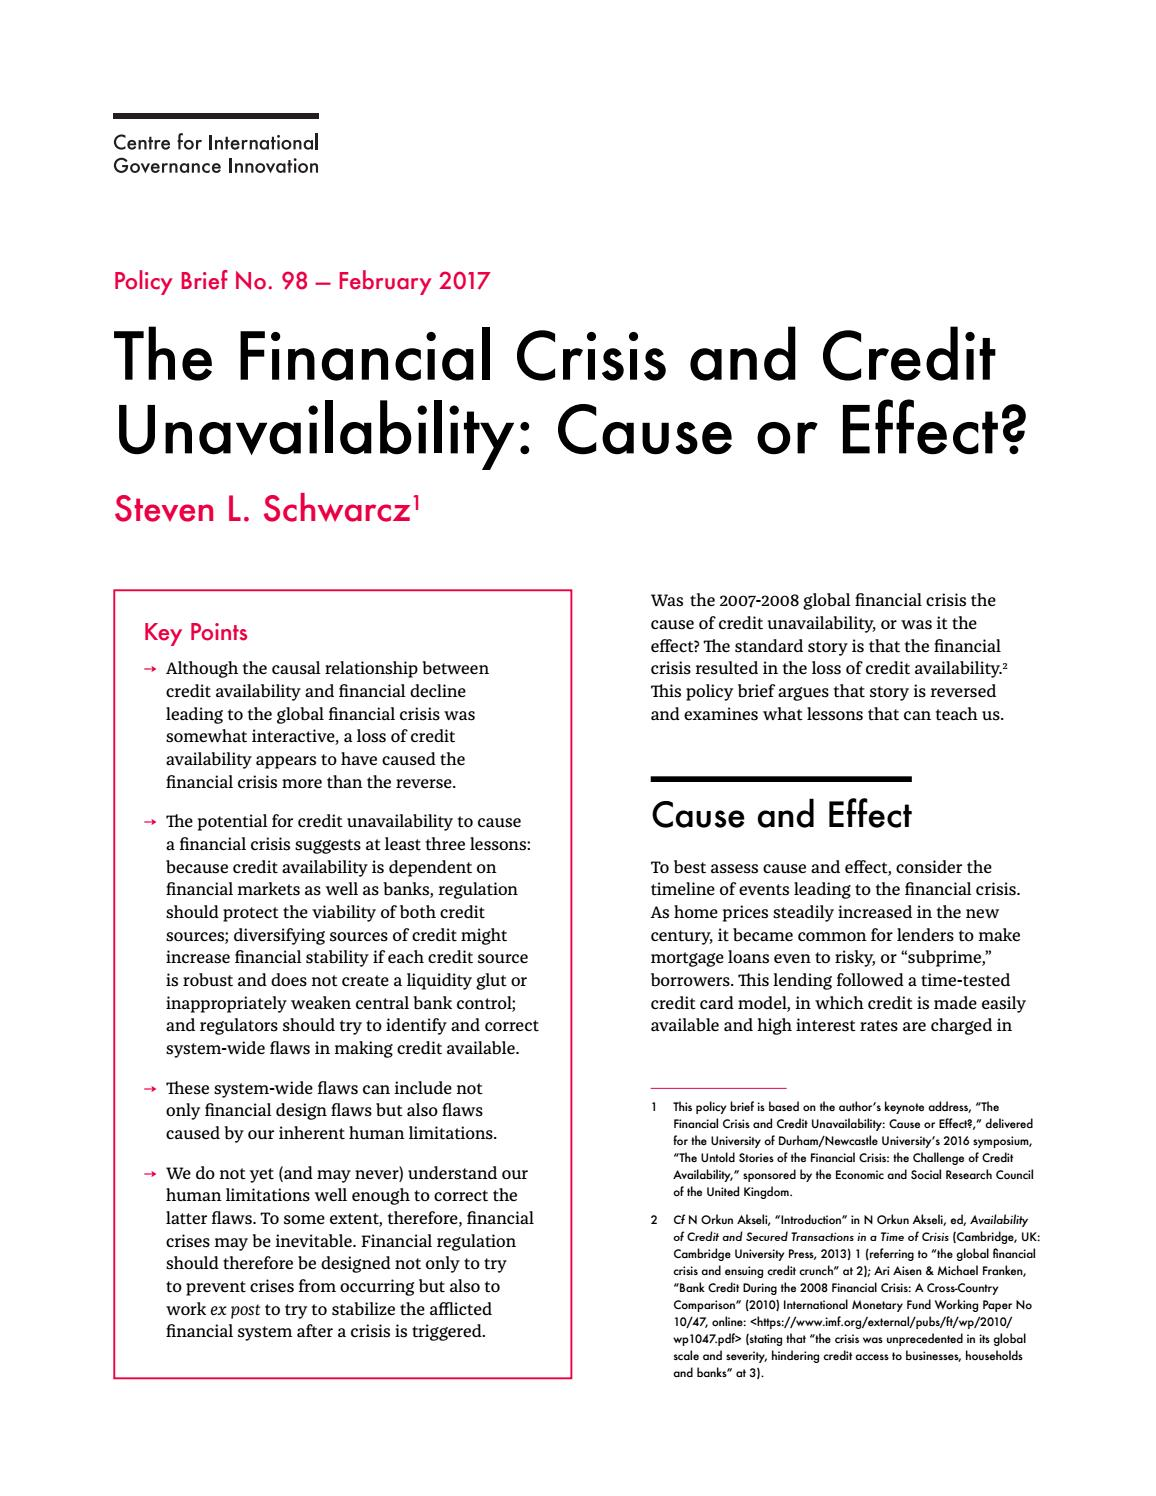 The financial crisis and credit unavailability by centre for the financial crisis and credit unavailability by centre for international governance innovation issuu fandeluxe Gallery